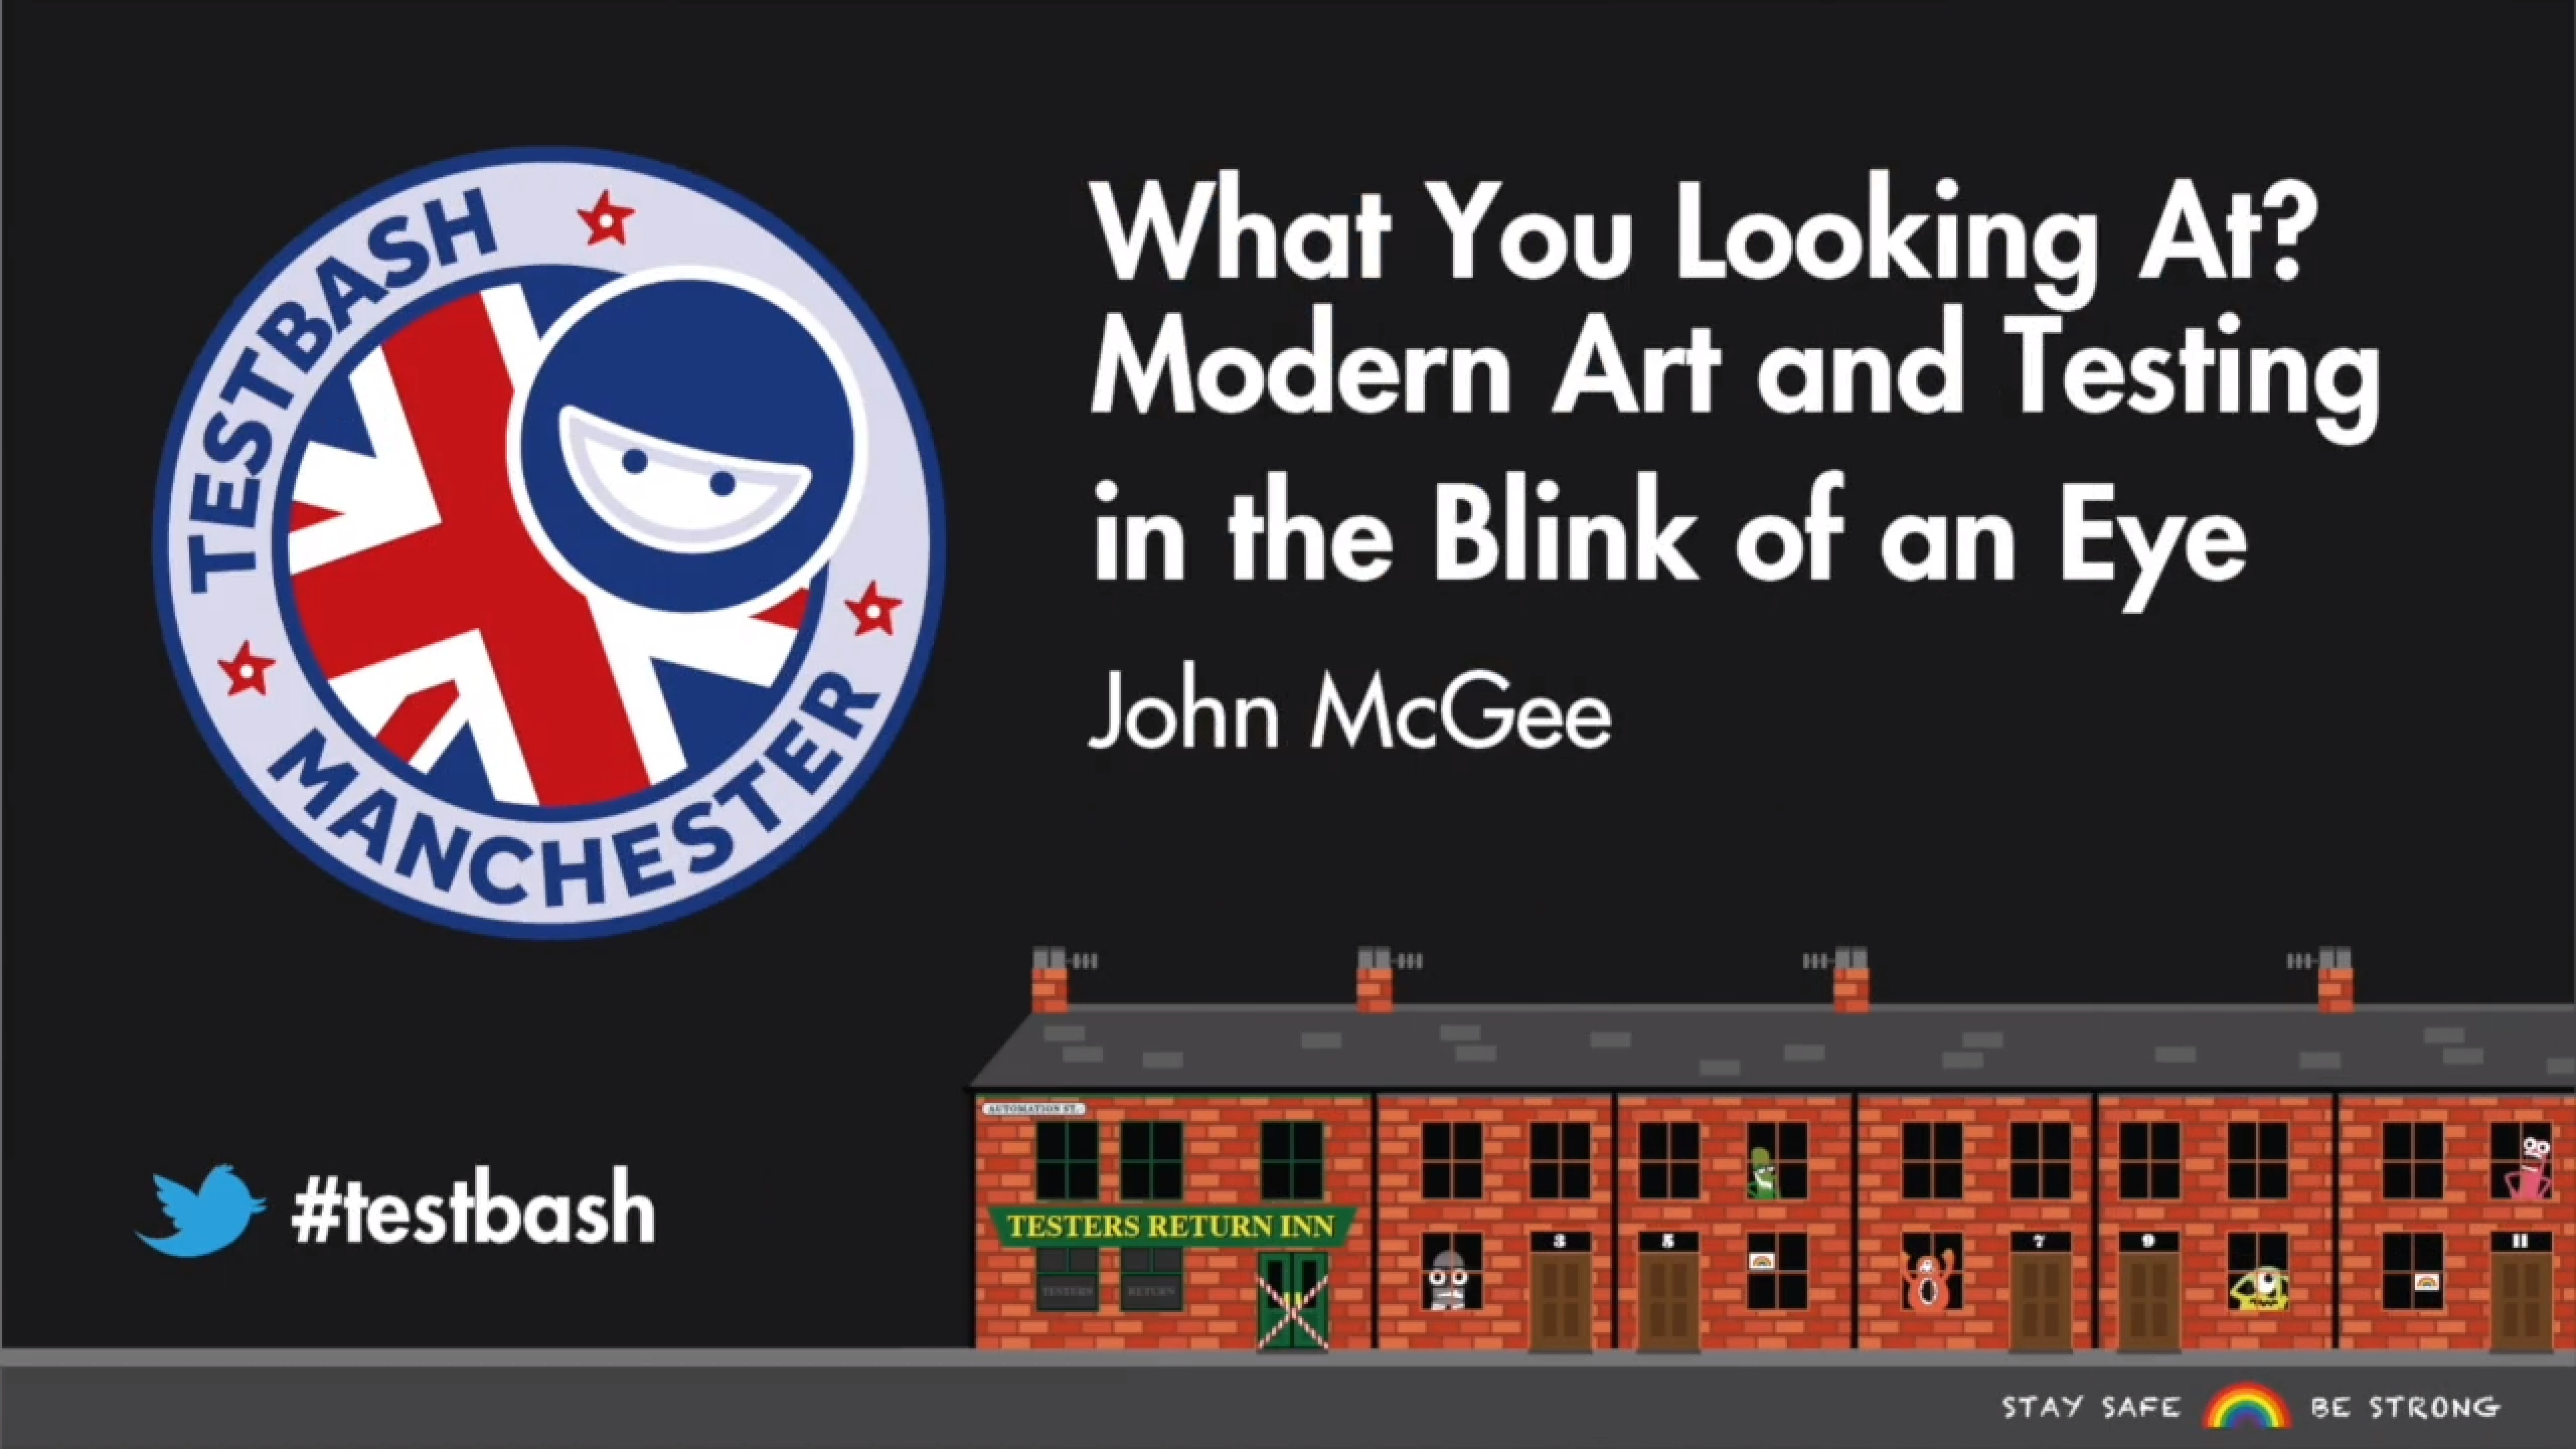 What You Looking at? Modern Art and Testing in the Blink of an Eye - John McGee